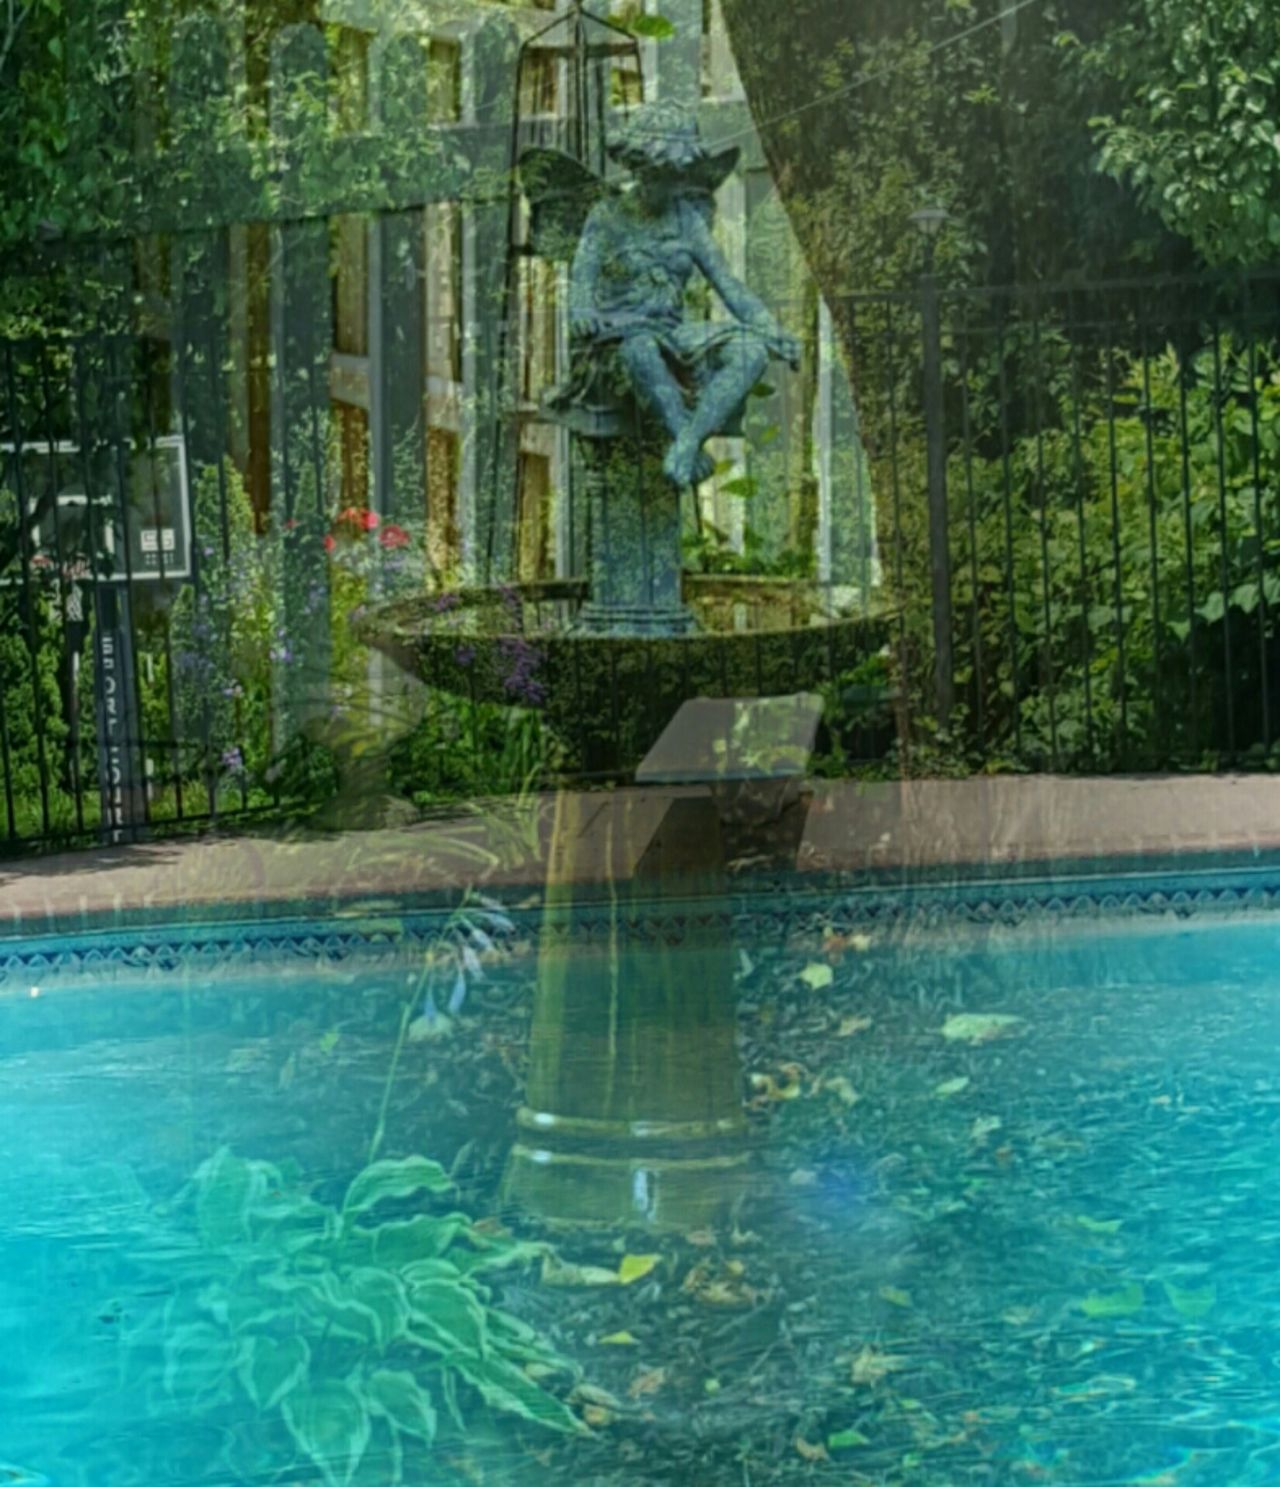 Angel Birdbath Overlay Double Exposure Pool Spiritual Water WallpaperForMobile Webdesign Blue Angels Summer Views